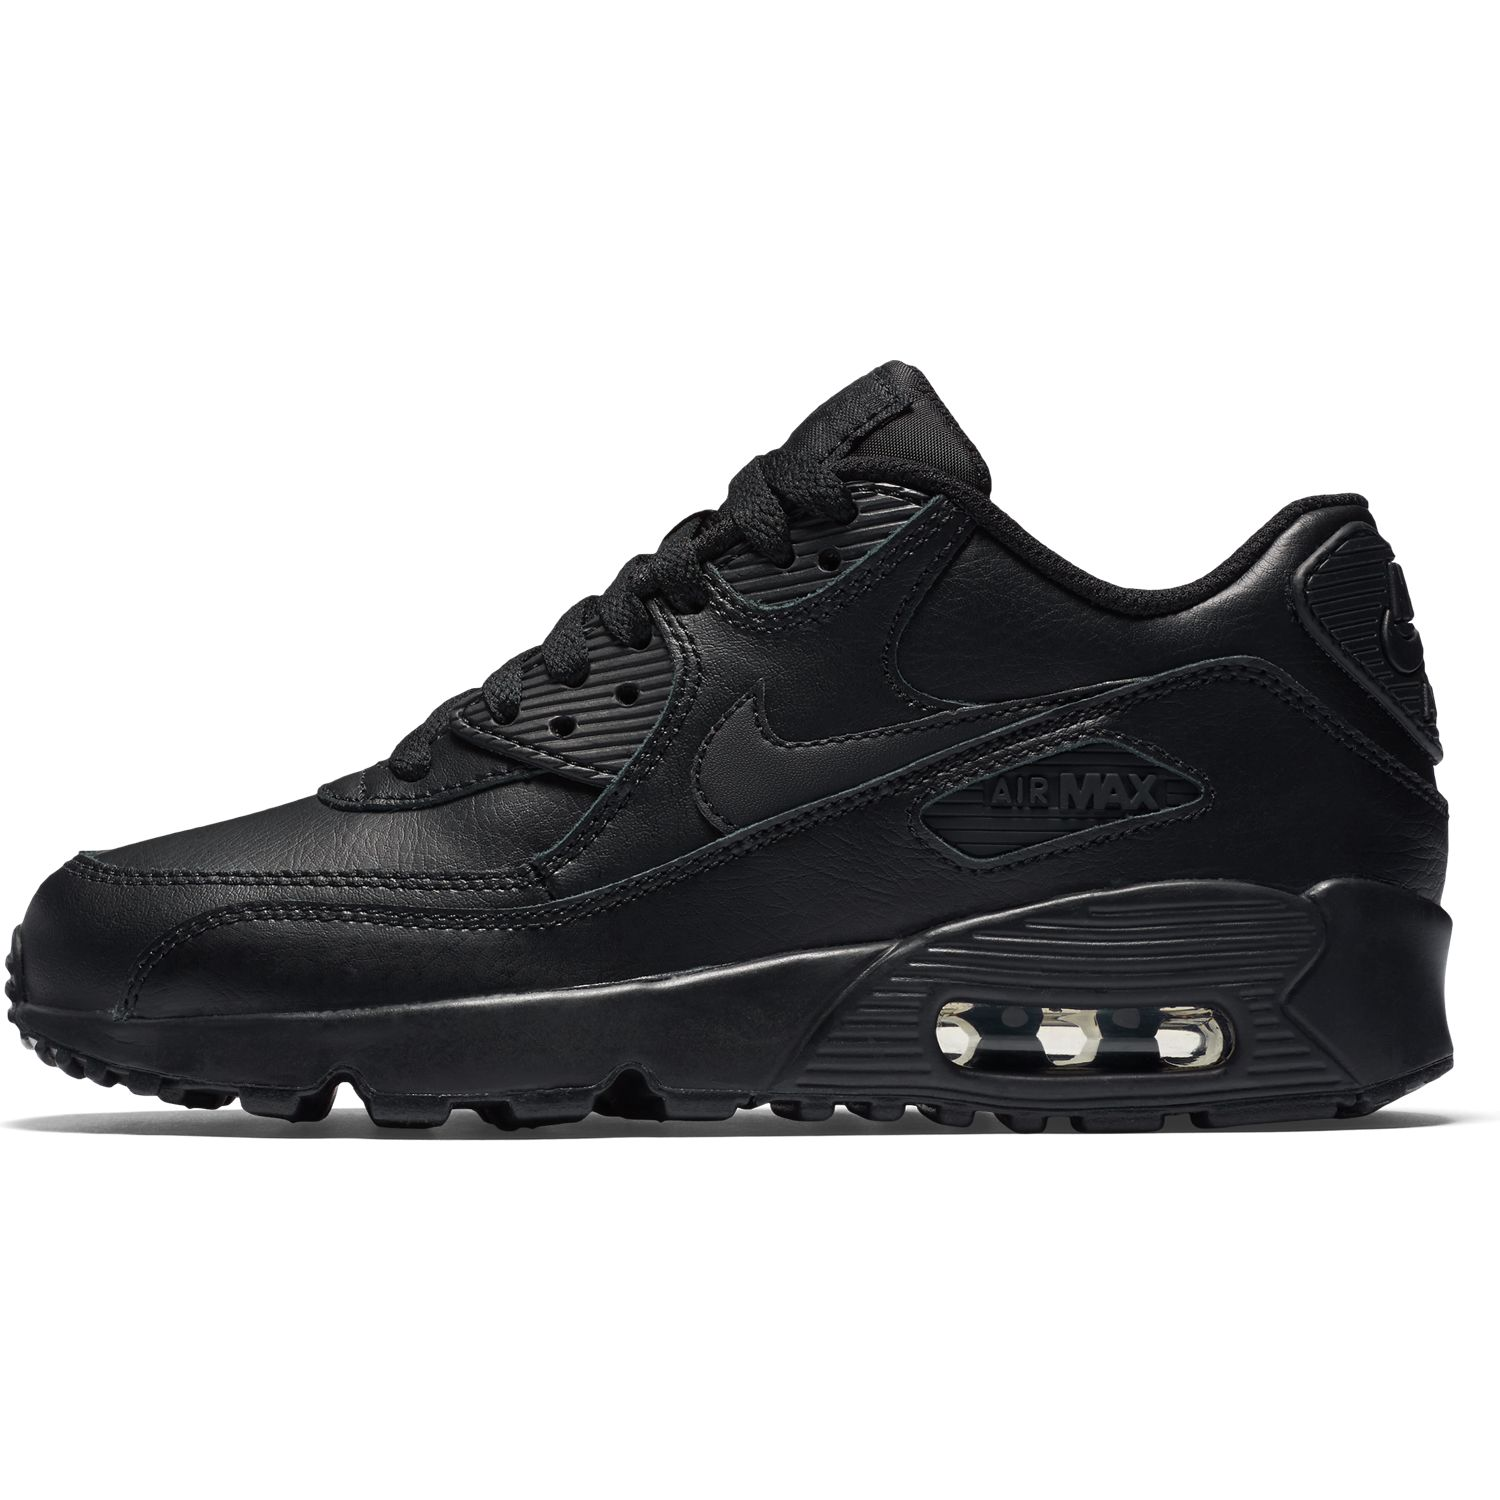 Nike Air Max 90 Leather Black 833412 001